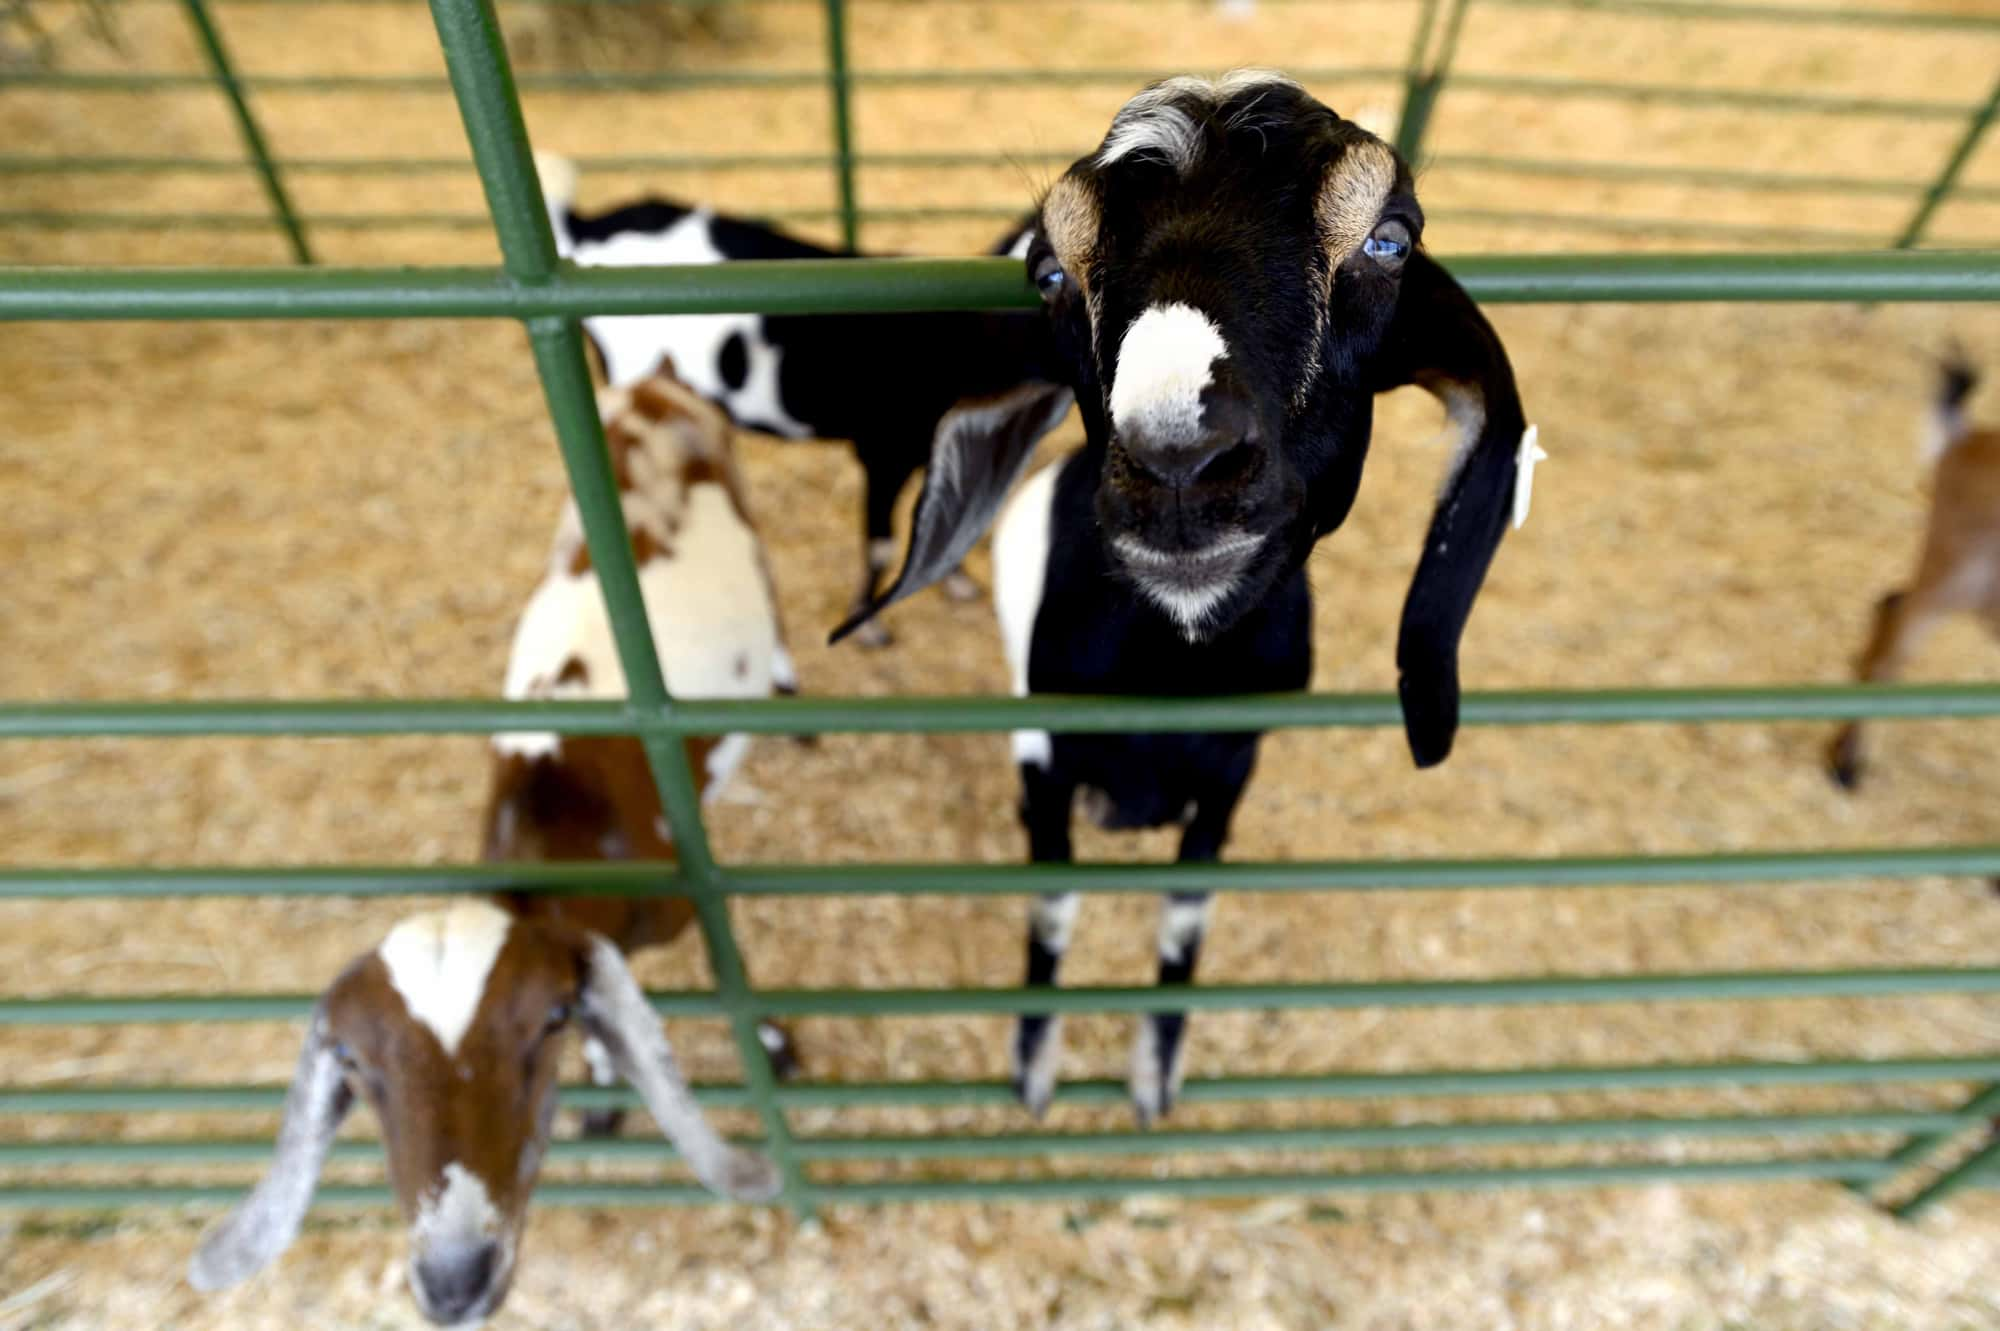 Goats reach for food at the petting zoo Saturday, July 28, 2012 at the Fredericksburg Agricultural Fair in Fredericksburg, Va. (AP Photo/The Free Lance-Star, Reza A. Marvashti)